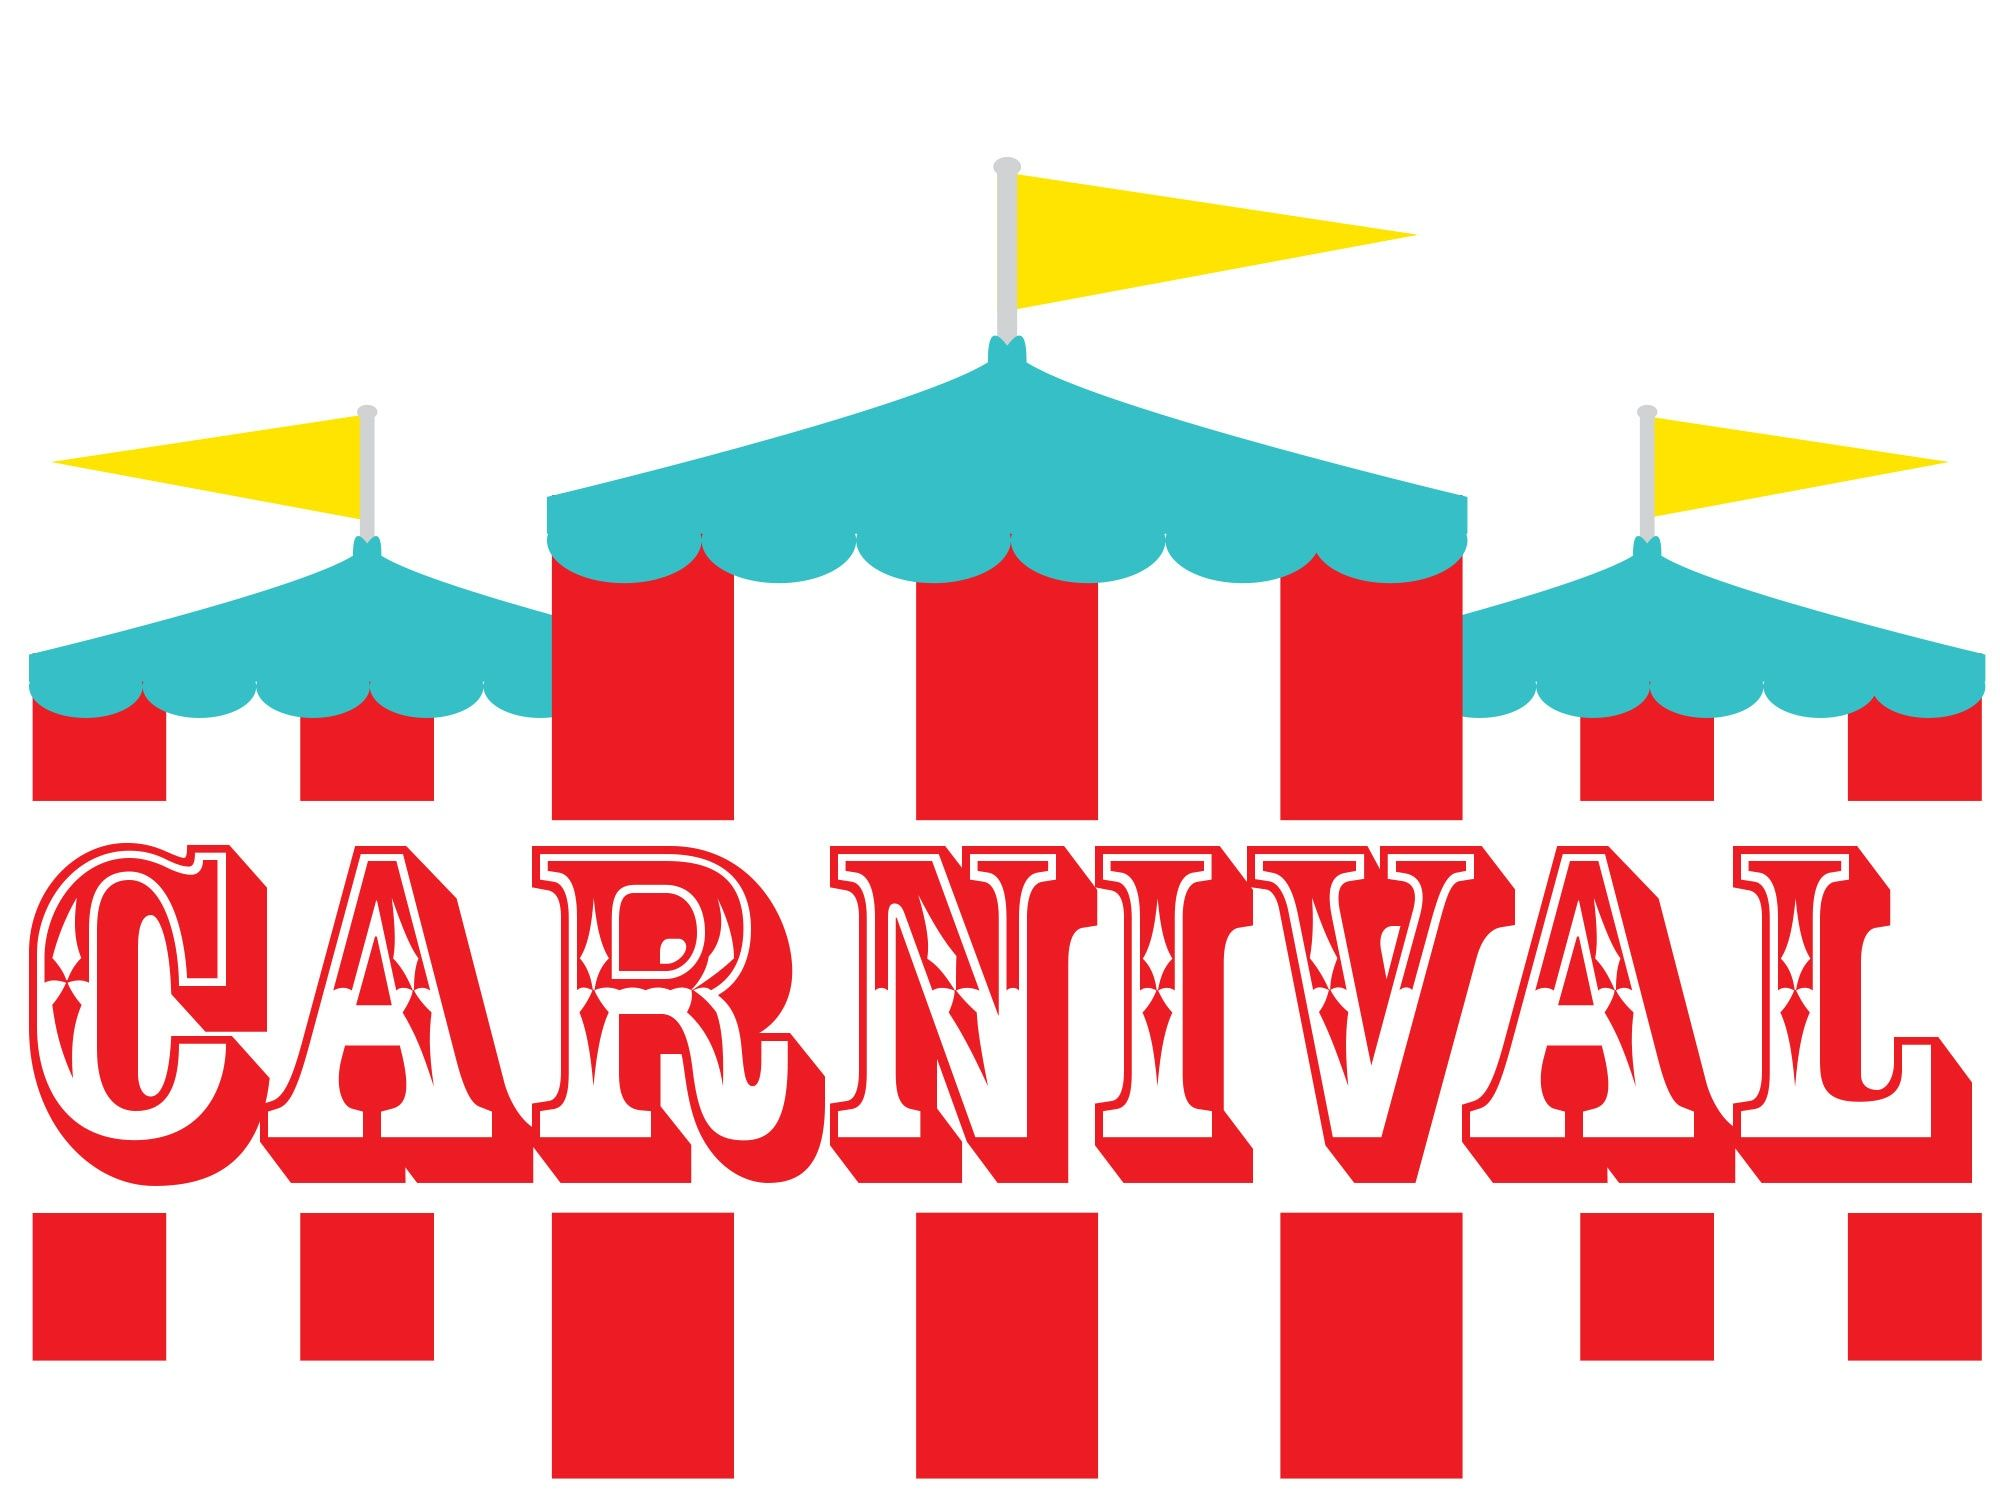 school carnival poster image google search school carnival celebrate national cousins day on 24 by hosting a cousins carnival check out some